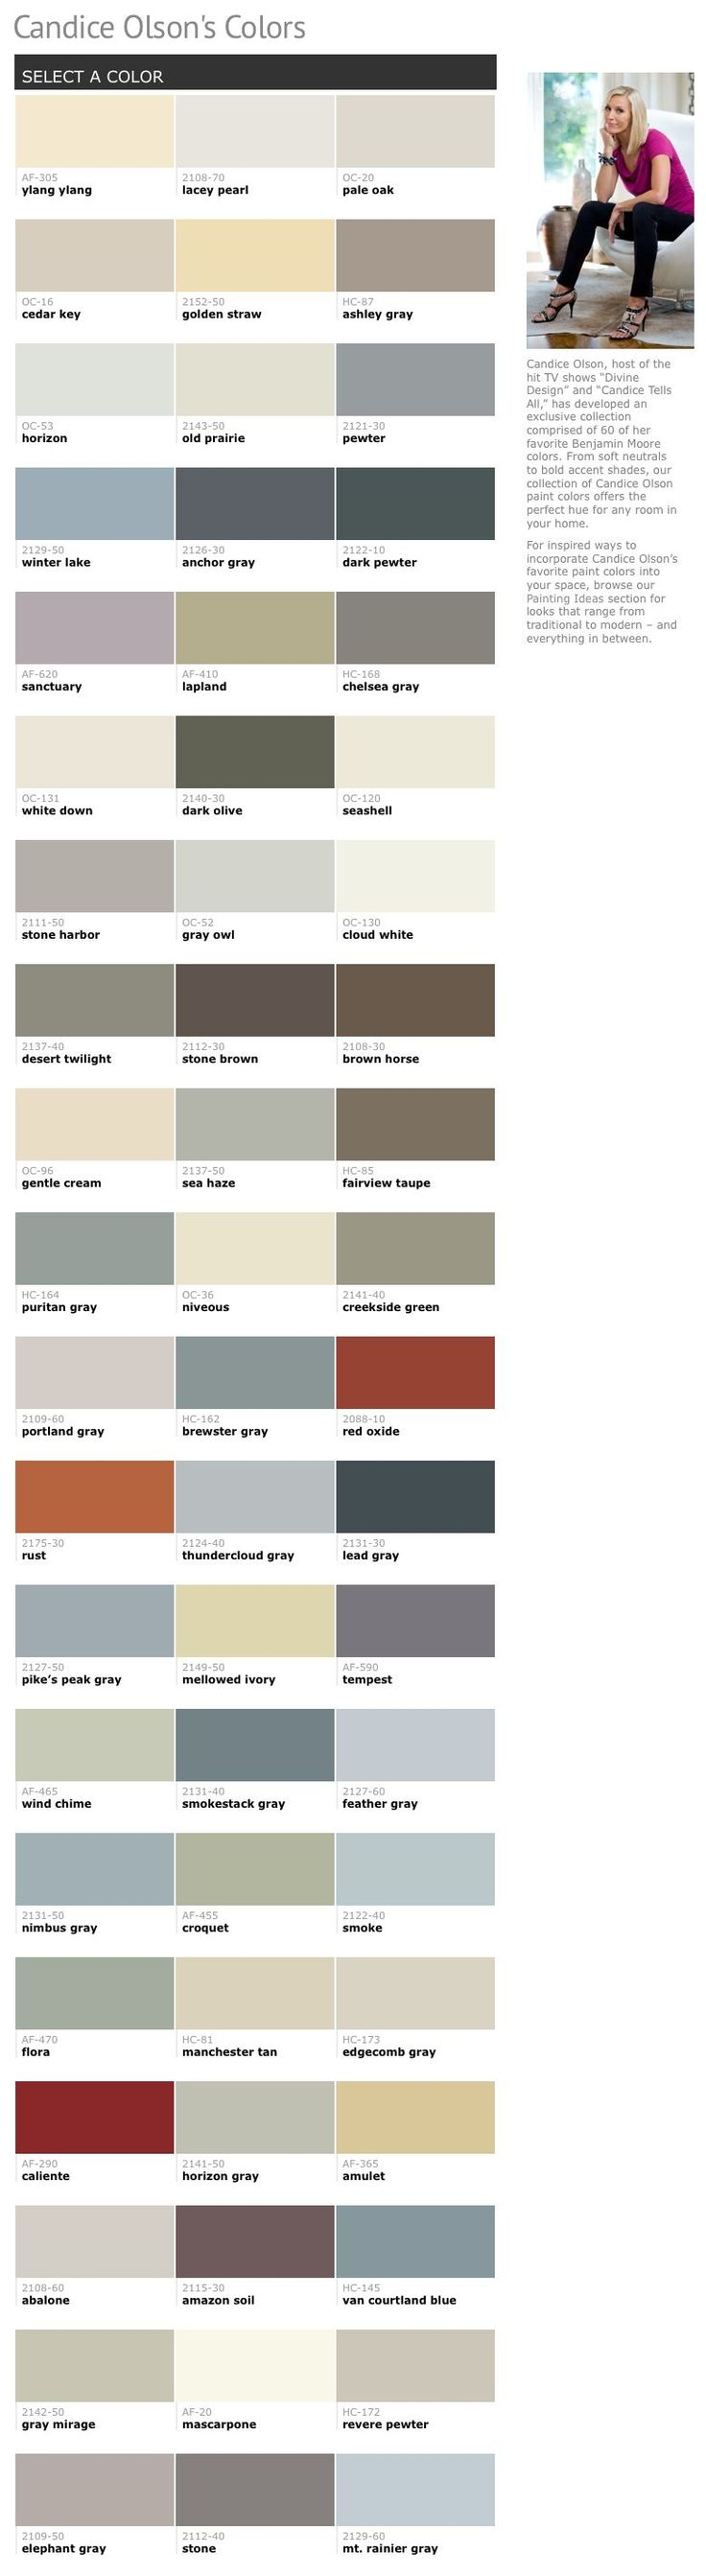 Candice Olson's Favorite Paint Colors from Benjamin Moore